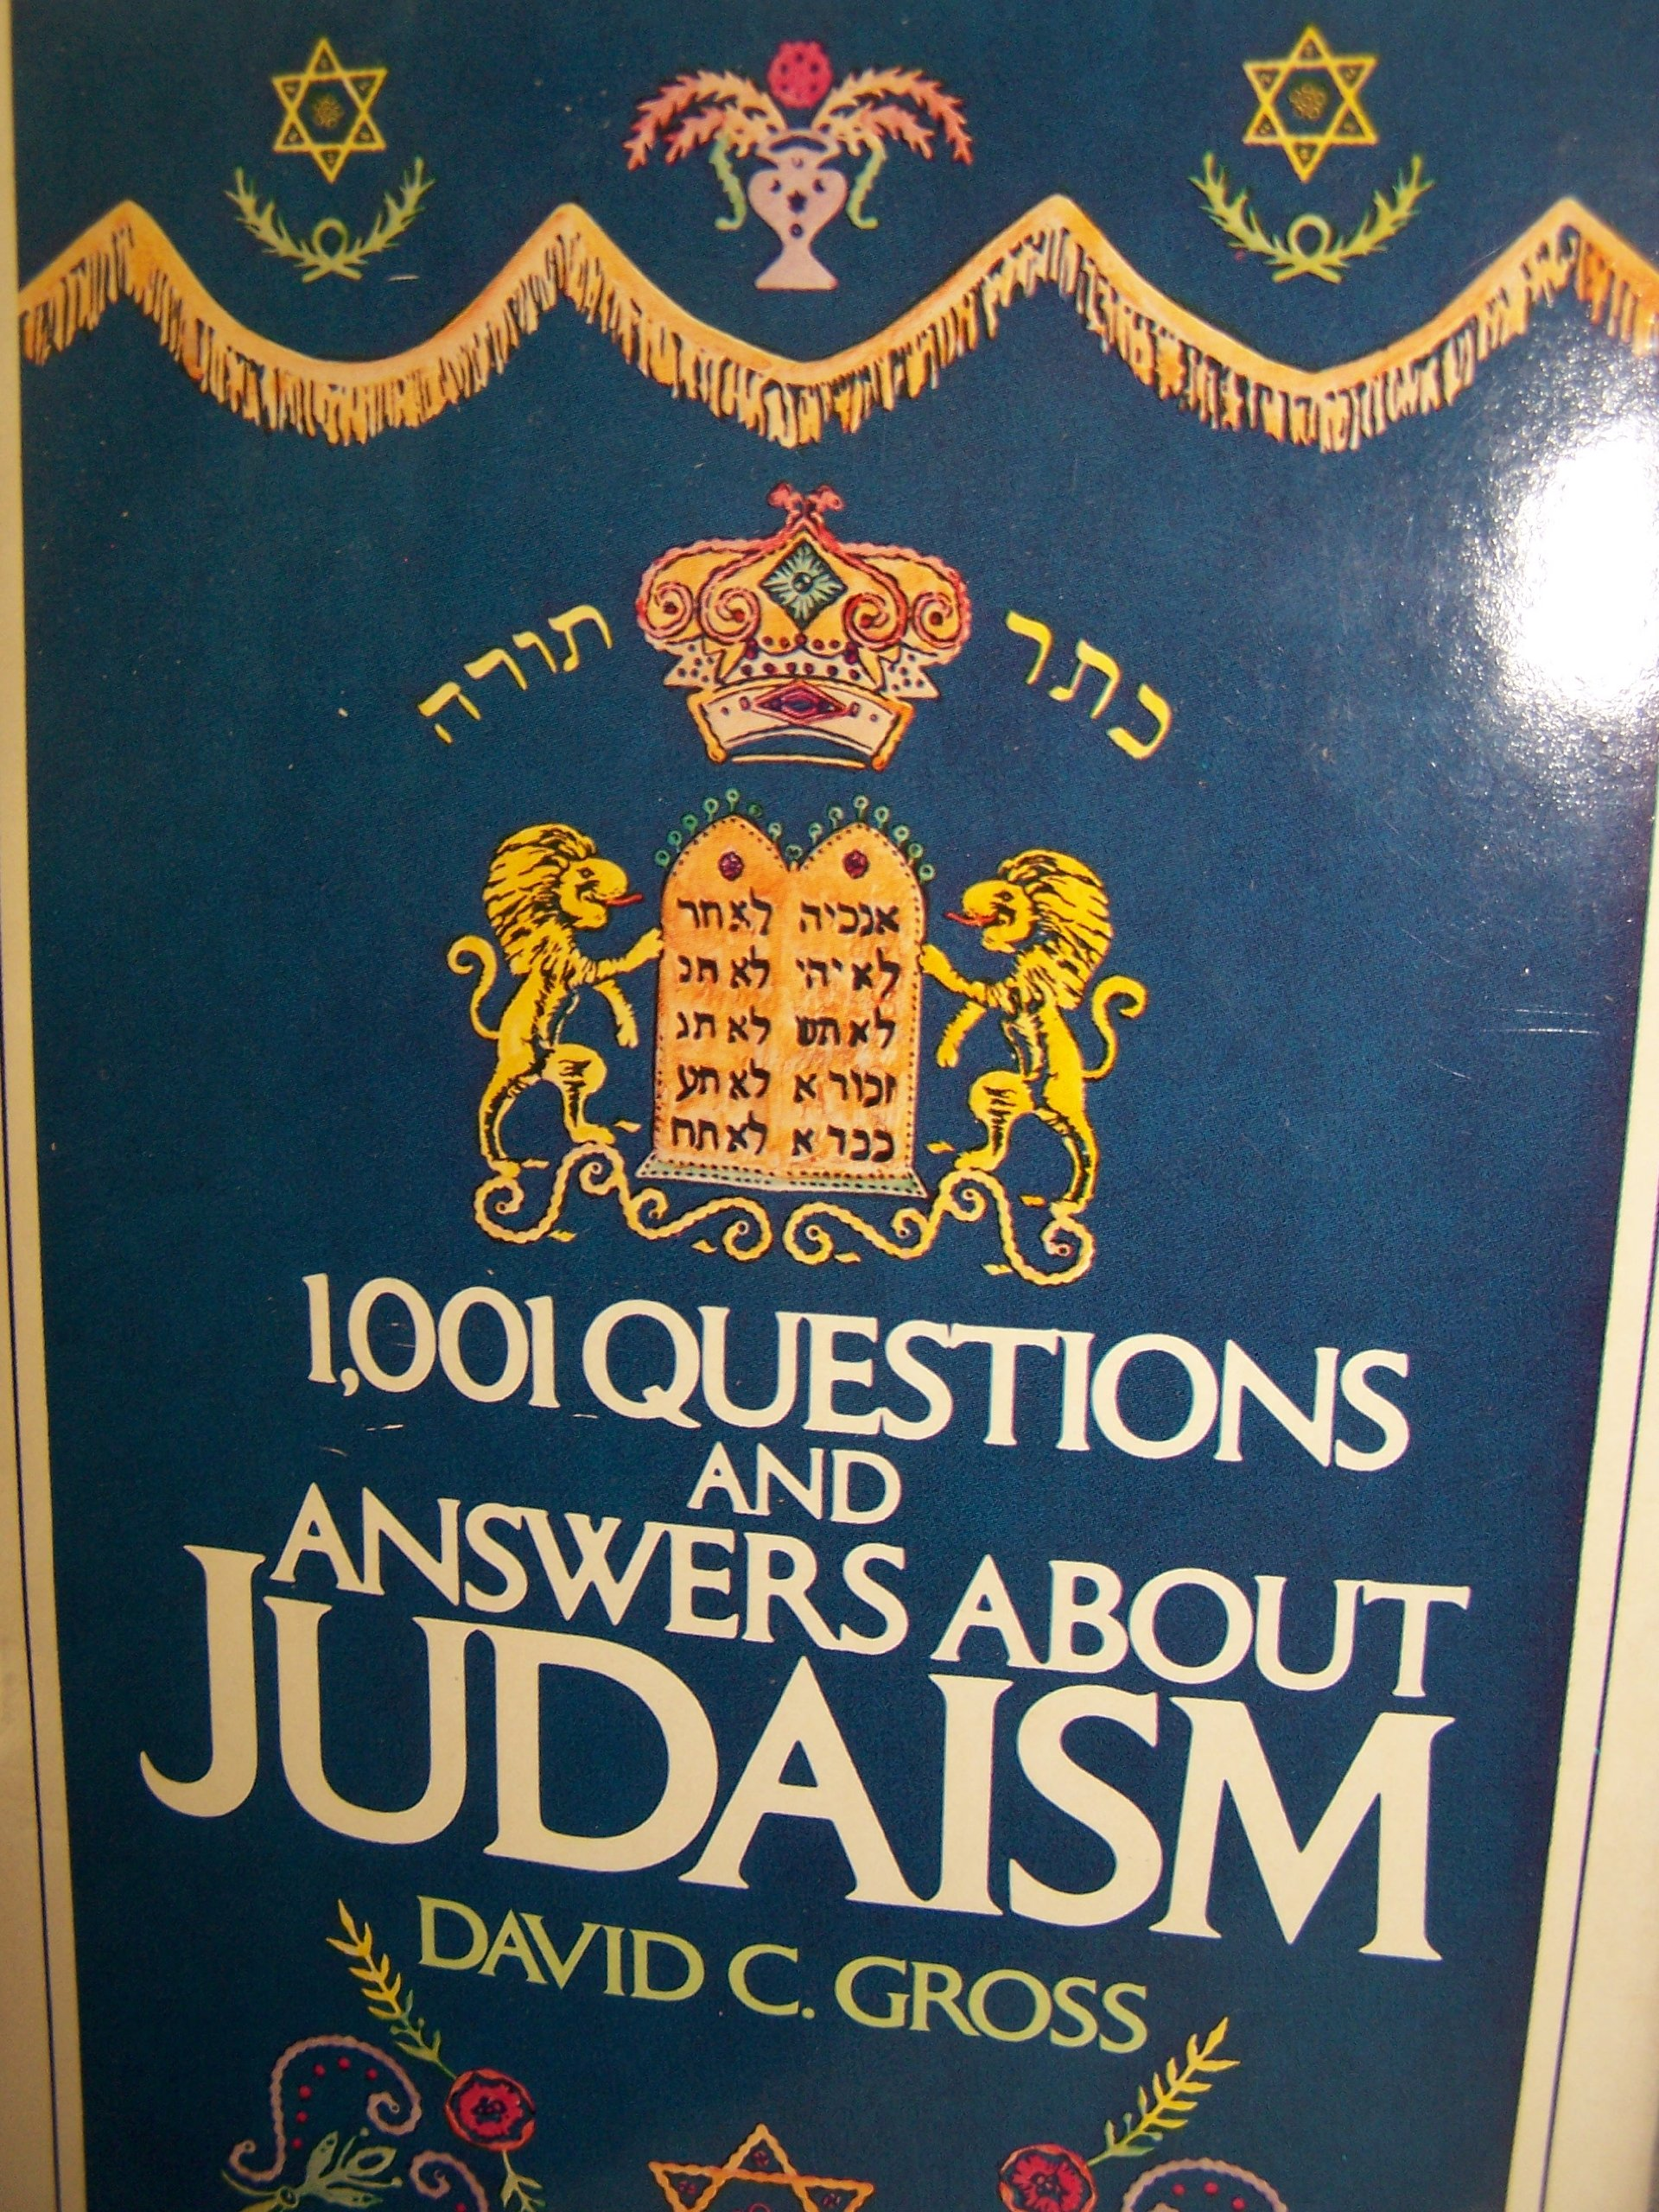 1001 Questions and Answers About Judaism: David C. Gross: 9780860515081:  Amazon.com: Books